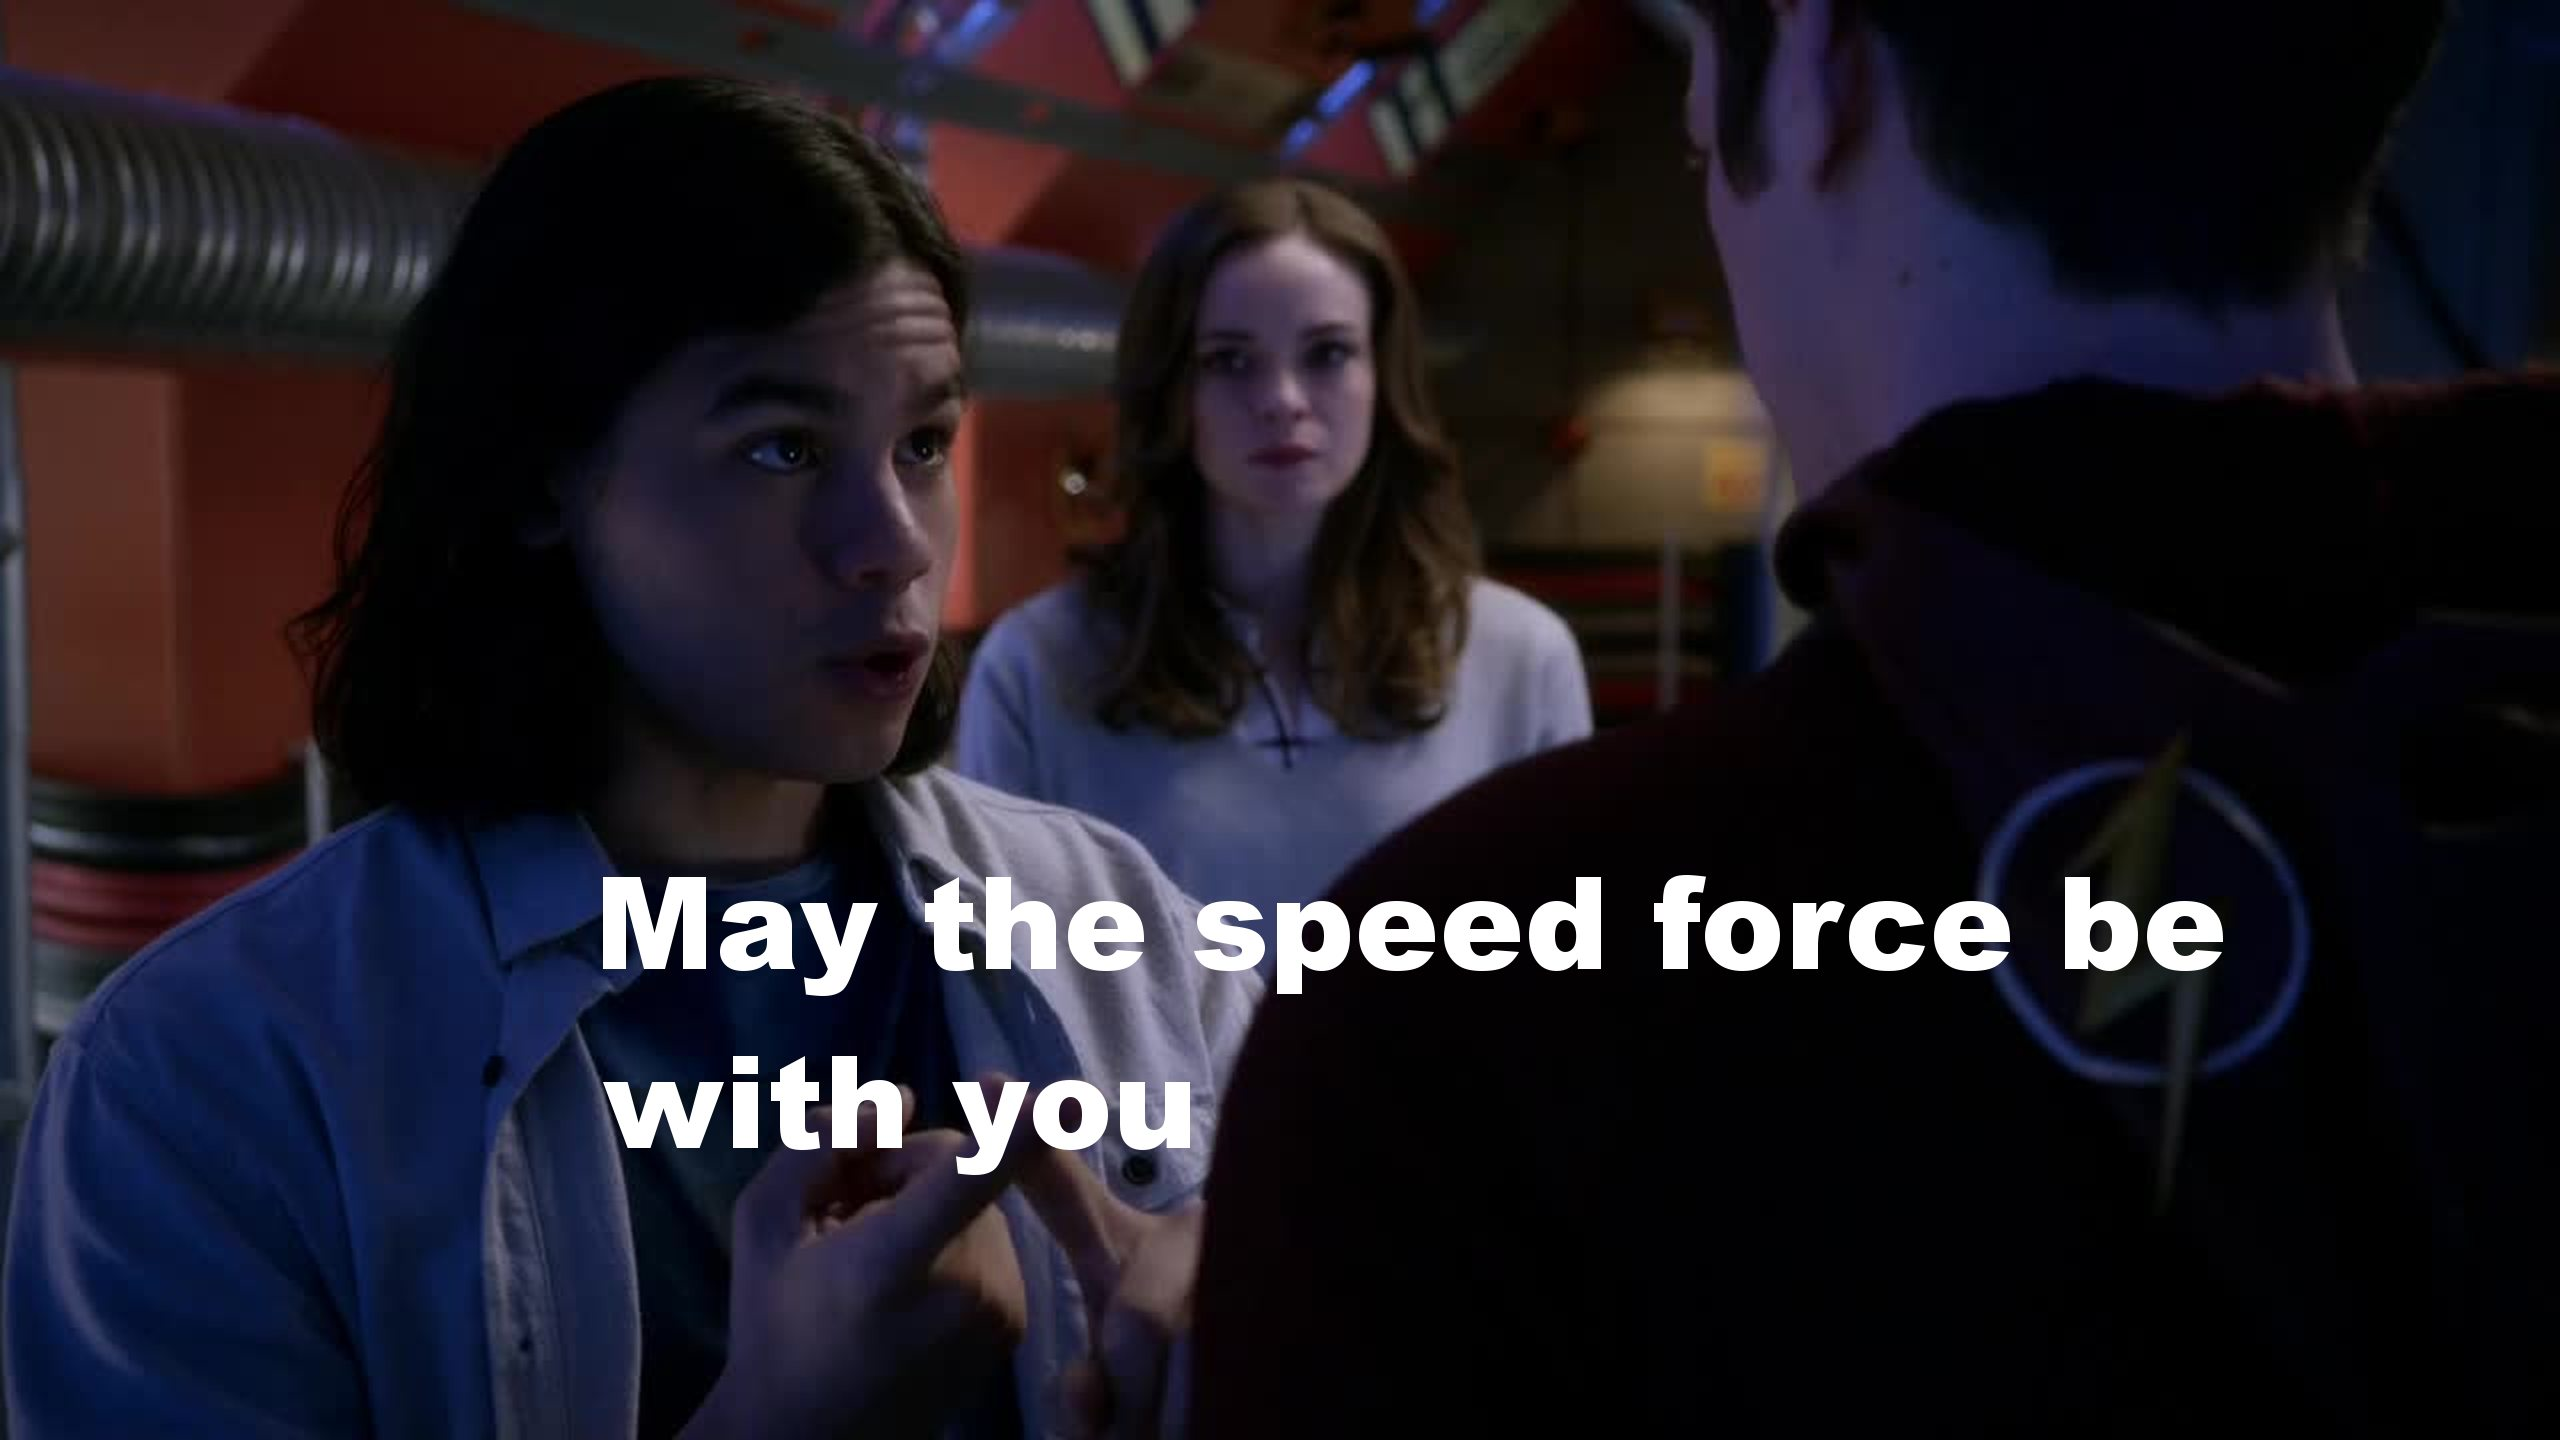 Cisco knows when it's the right moment to quote Star Wars